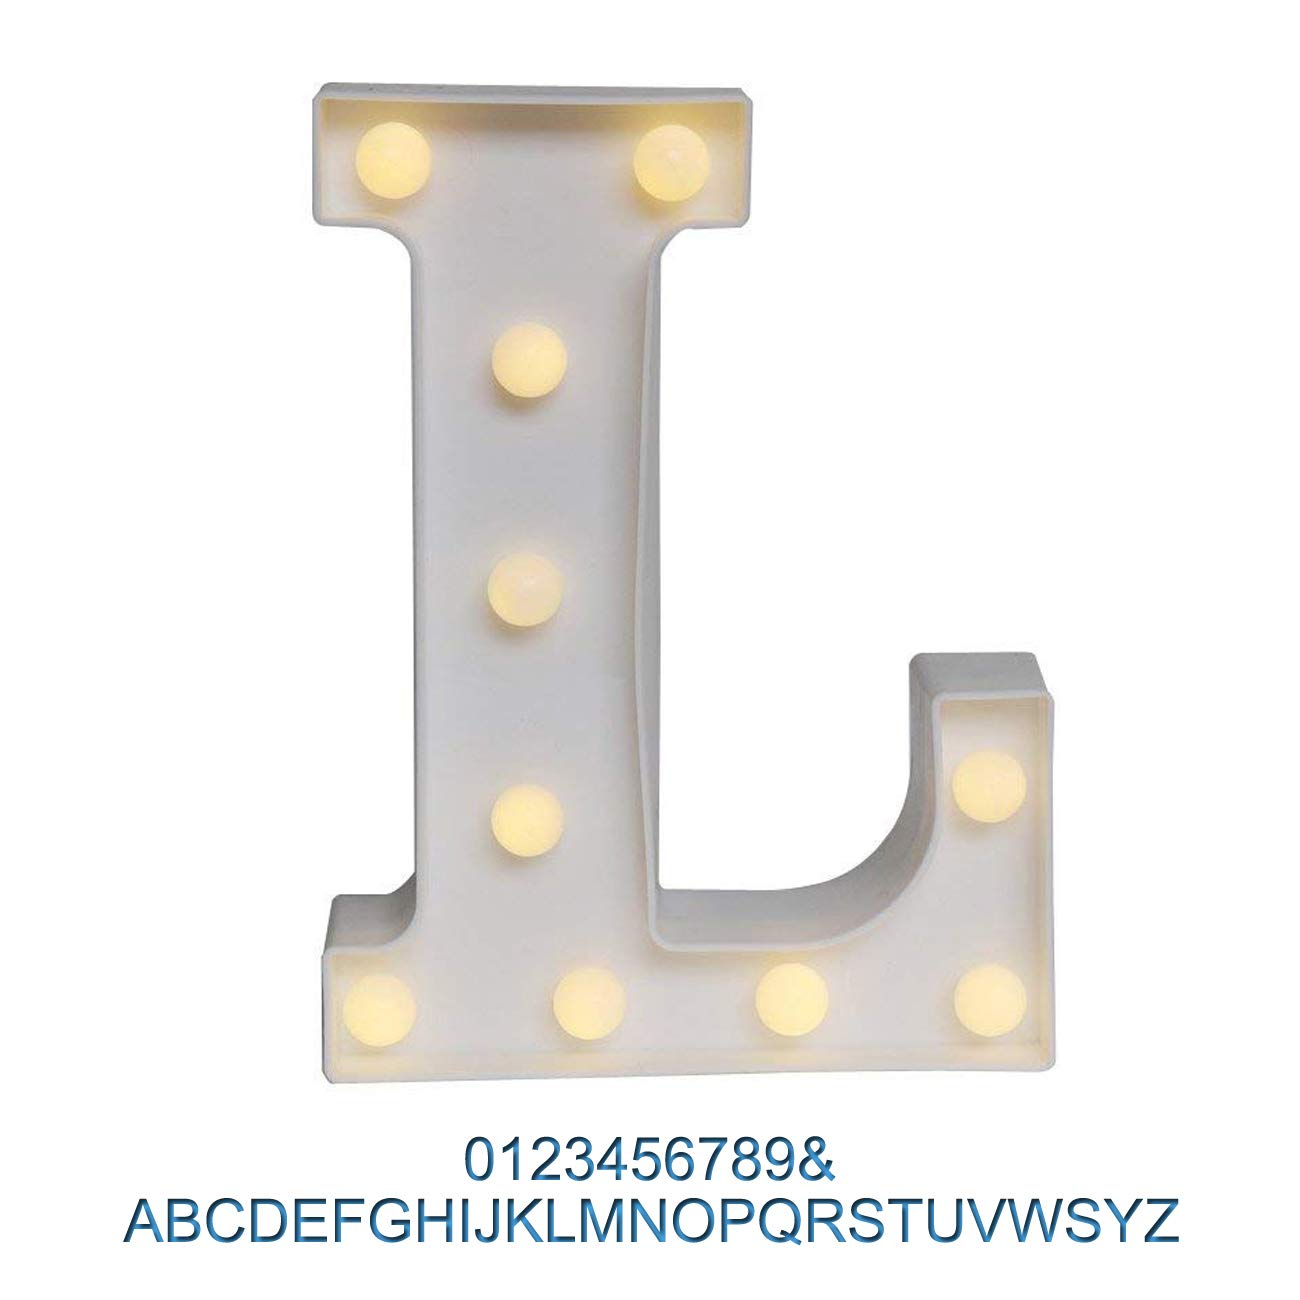 Ogrmar Decorative Led Light Up Number Letters, White Plastic Marquee Number Lights Sign Party Wedding Decor Battery Operated (L)